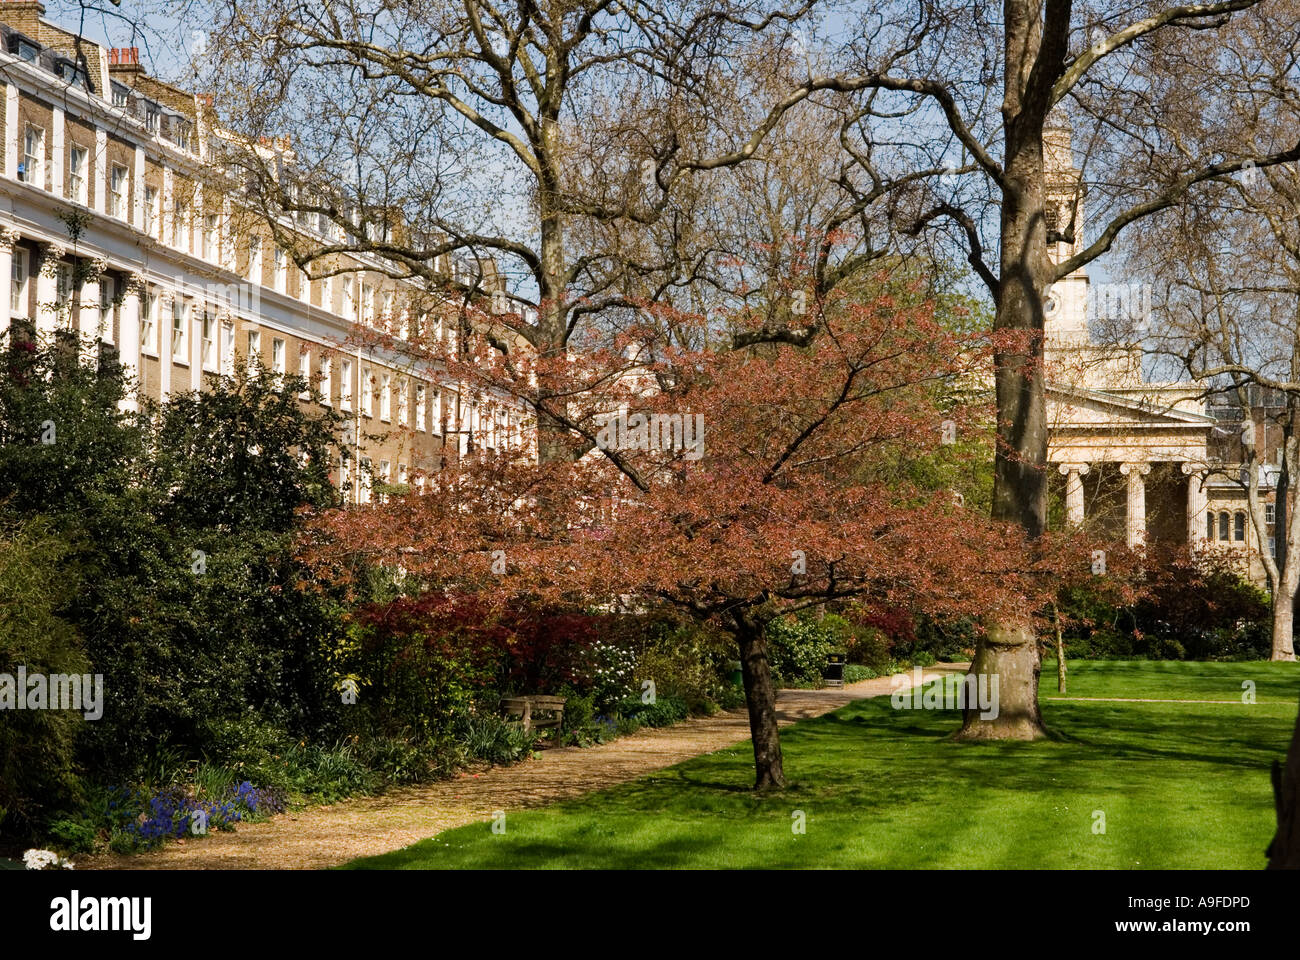 Eaton Square, private gardens. St Peters Church, Belgravia. City of  Westminster London SW1. England. HOMER SYKES Stock Photo